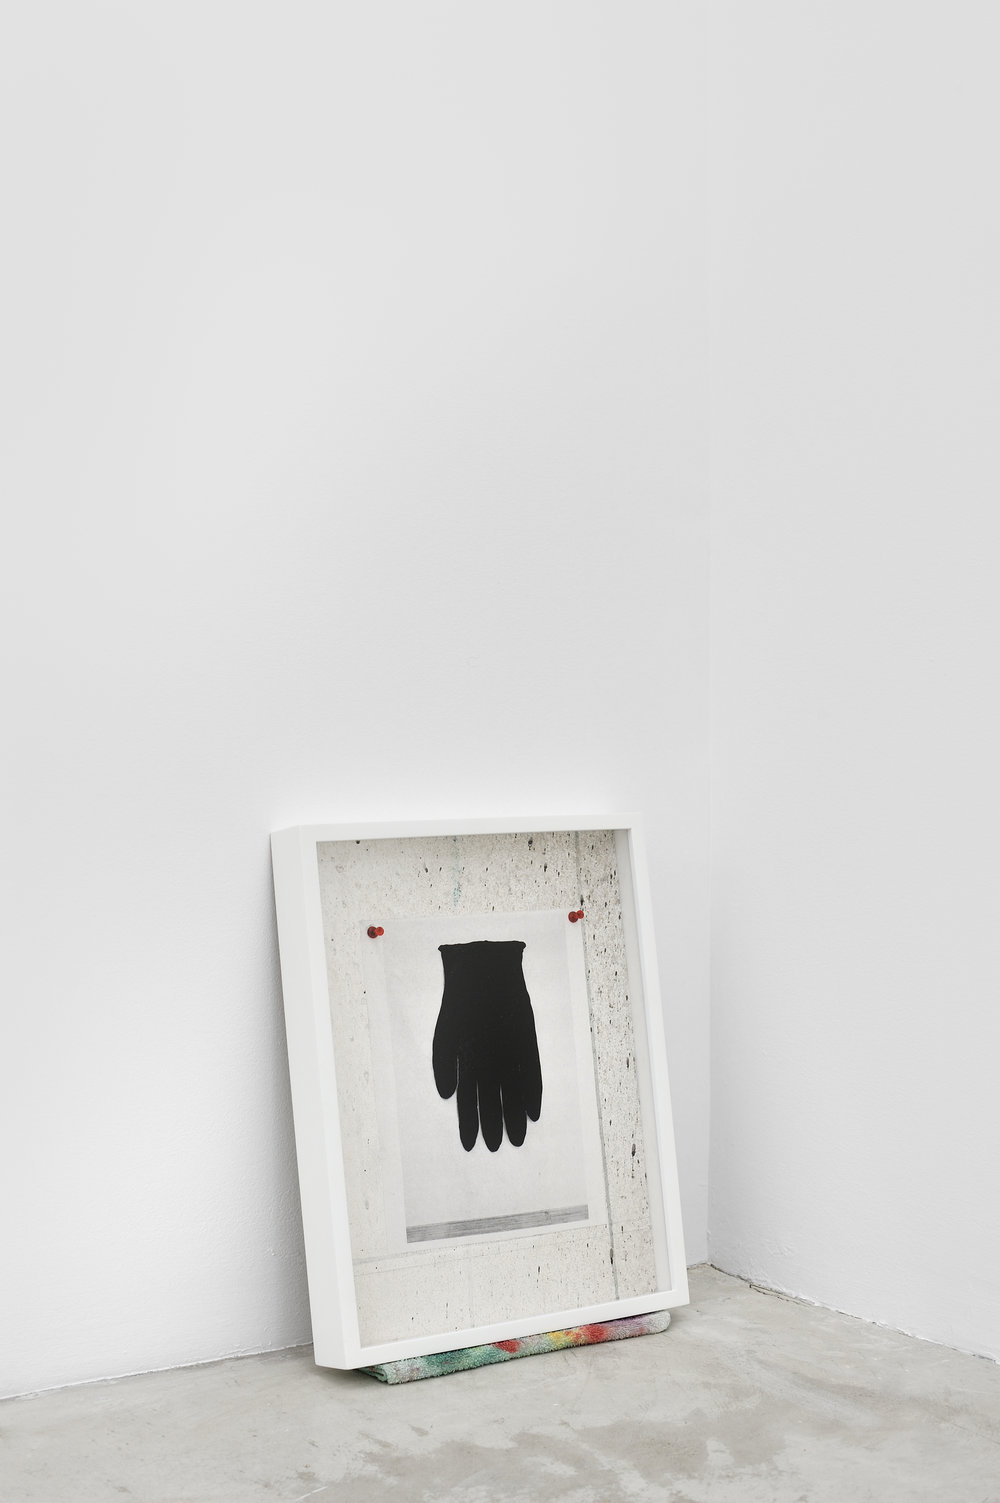 Untitled Still Life (BLACK GLOVE), 2015 sheetrock, latex paint, acrylic, graphite, acrylic on laser print, plastic thumbtacks 43,5 x 34 cm - 17 1/8 x 13 3/8 inches (framed)